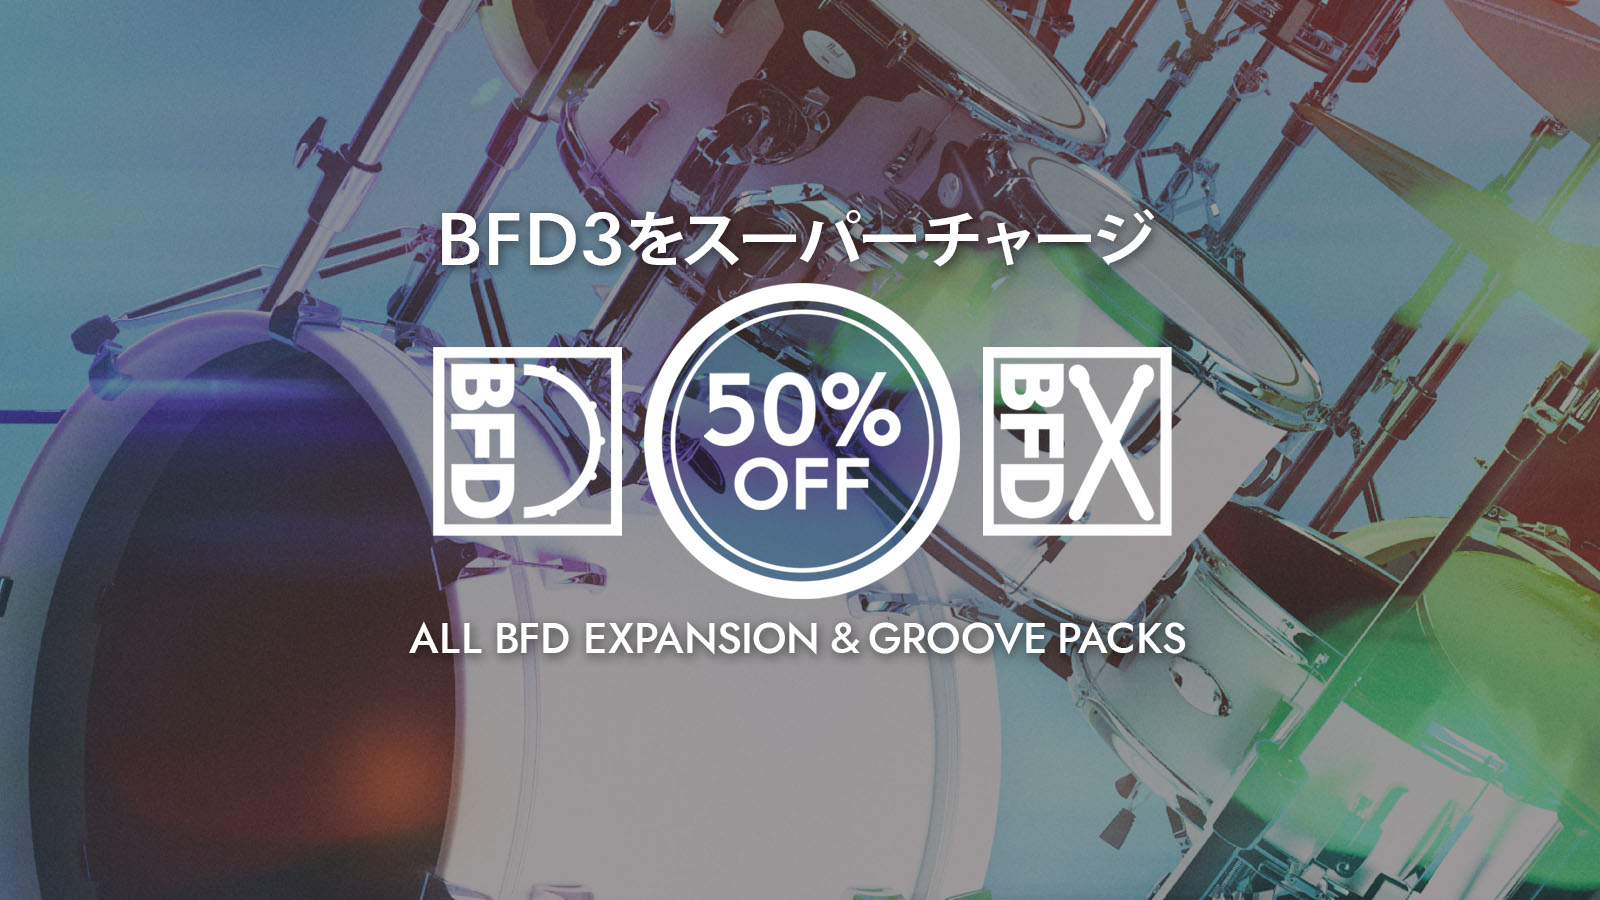 BFD3をスーパーチャージ!BFD Expansions & Grooves製品が50% OFF